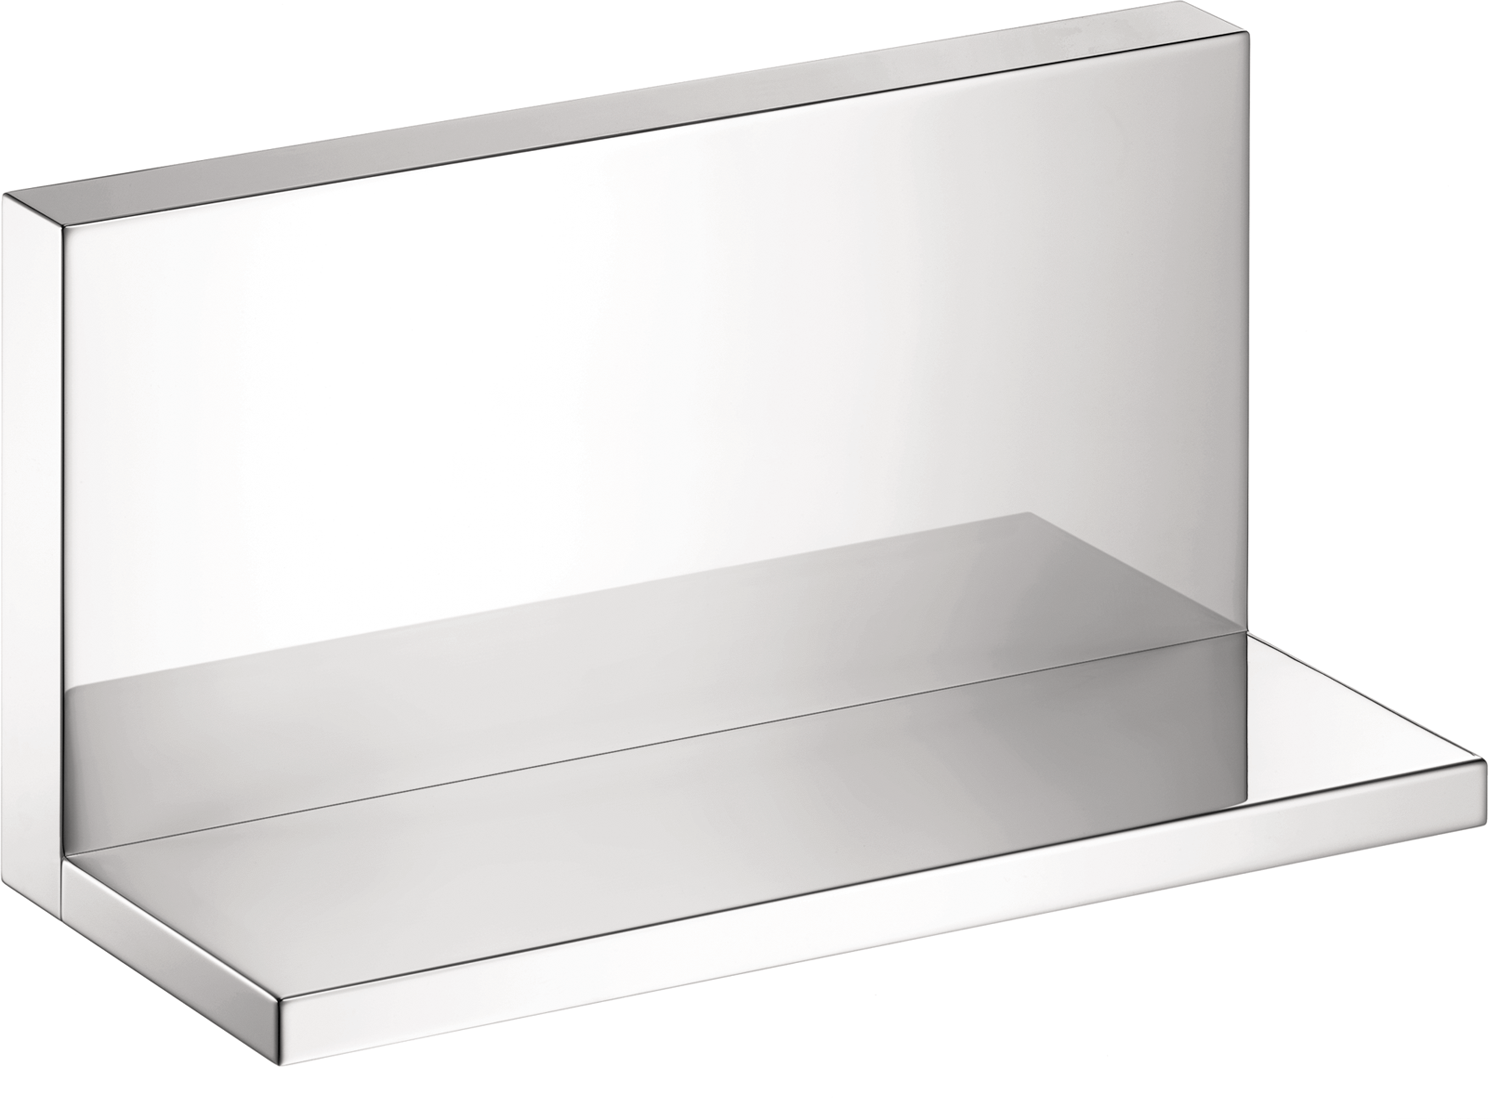 "Axor AXOR ShowerCollection Shower Shelf Trim, 10""x5"""